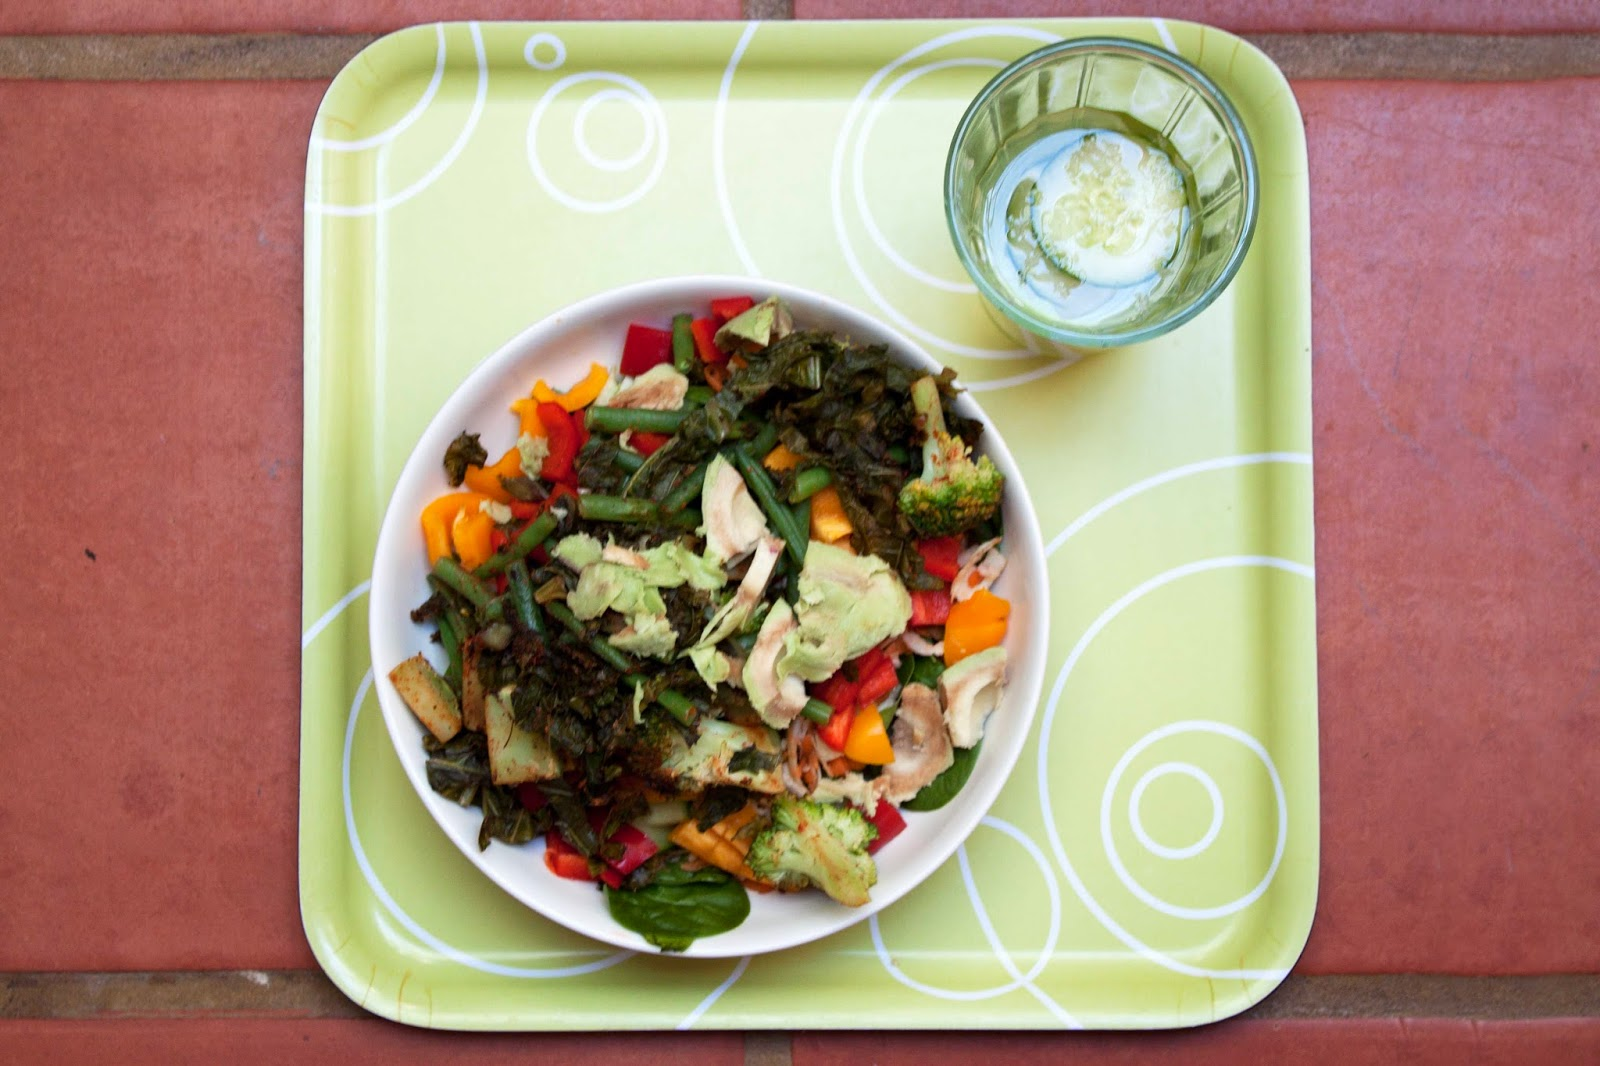 FOOD : ULTIMATE DETOX LUNCH